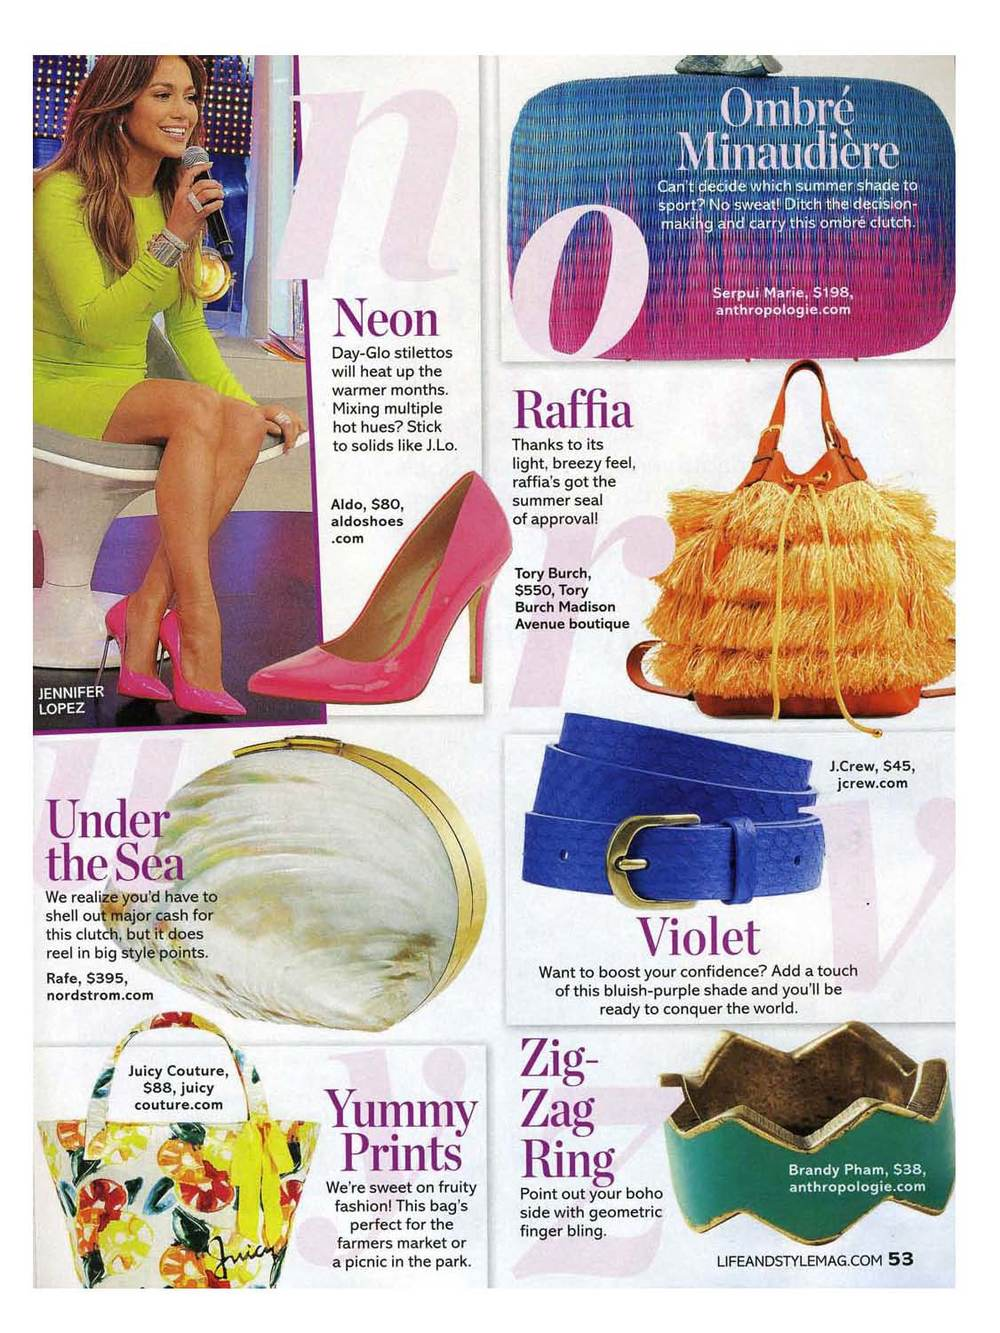 Life & Style 5 17 12_Page_2.jpg